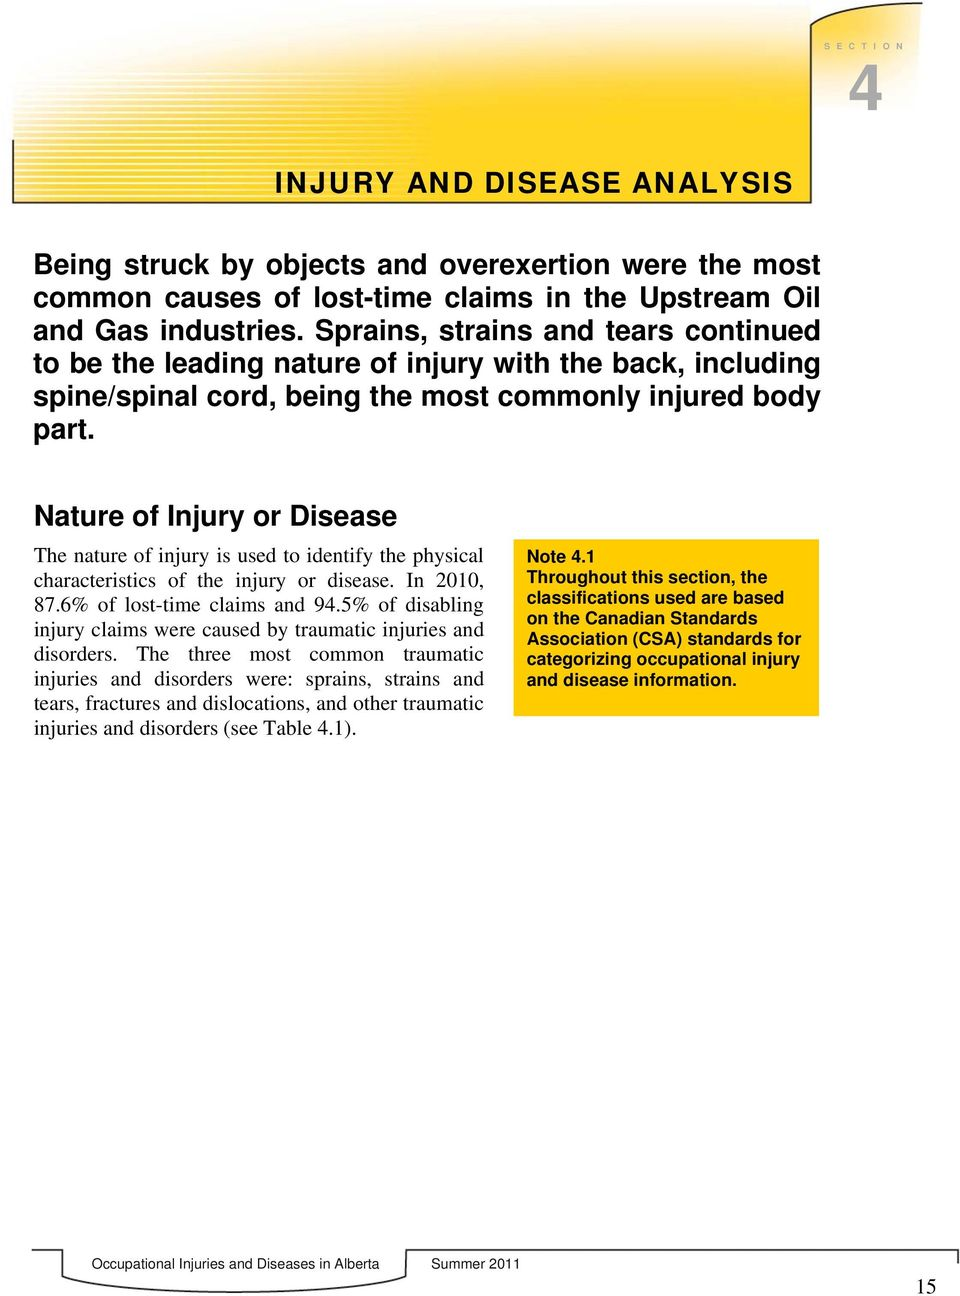 Nature of Injury or Disease The nature of injury is used to identify the physical characteristics of the injury or disease. In 2010, 87.6 of lost-time claims and 94.